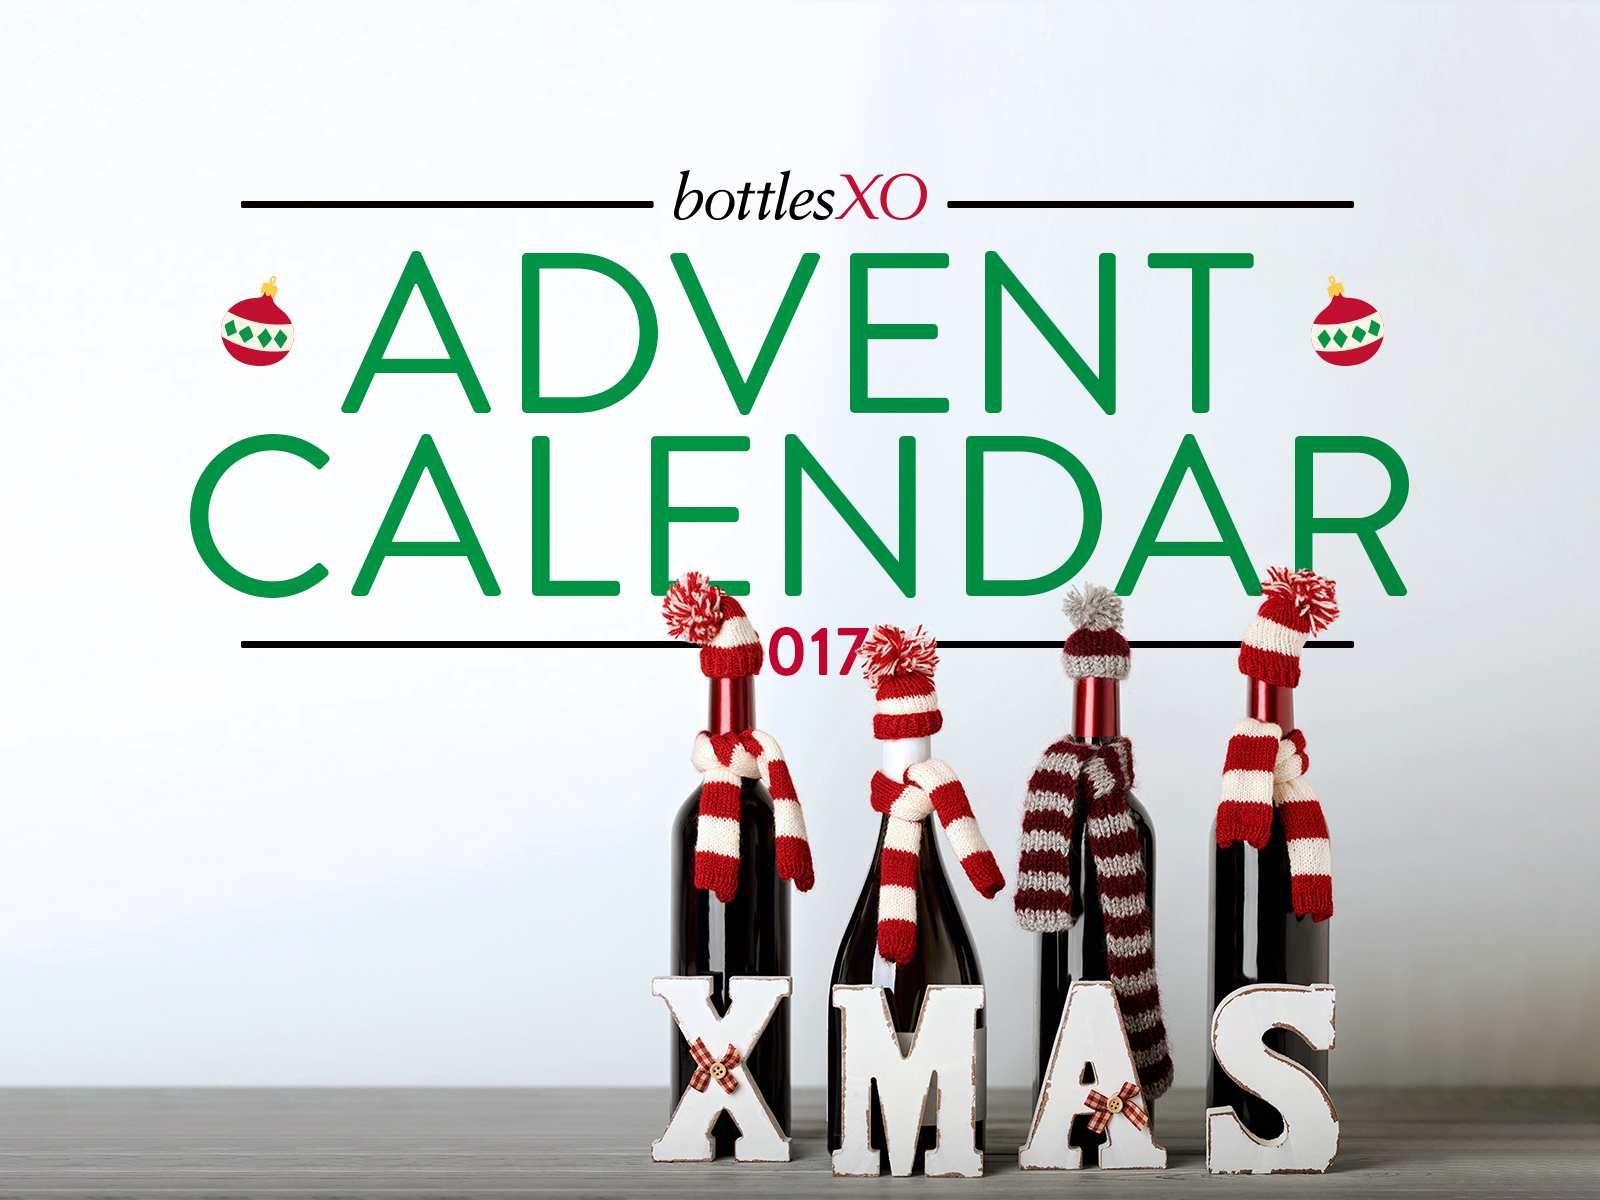 BottlesXO Advent Calendar | Your Last Chance to Win Amazing Christmas Prizes